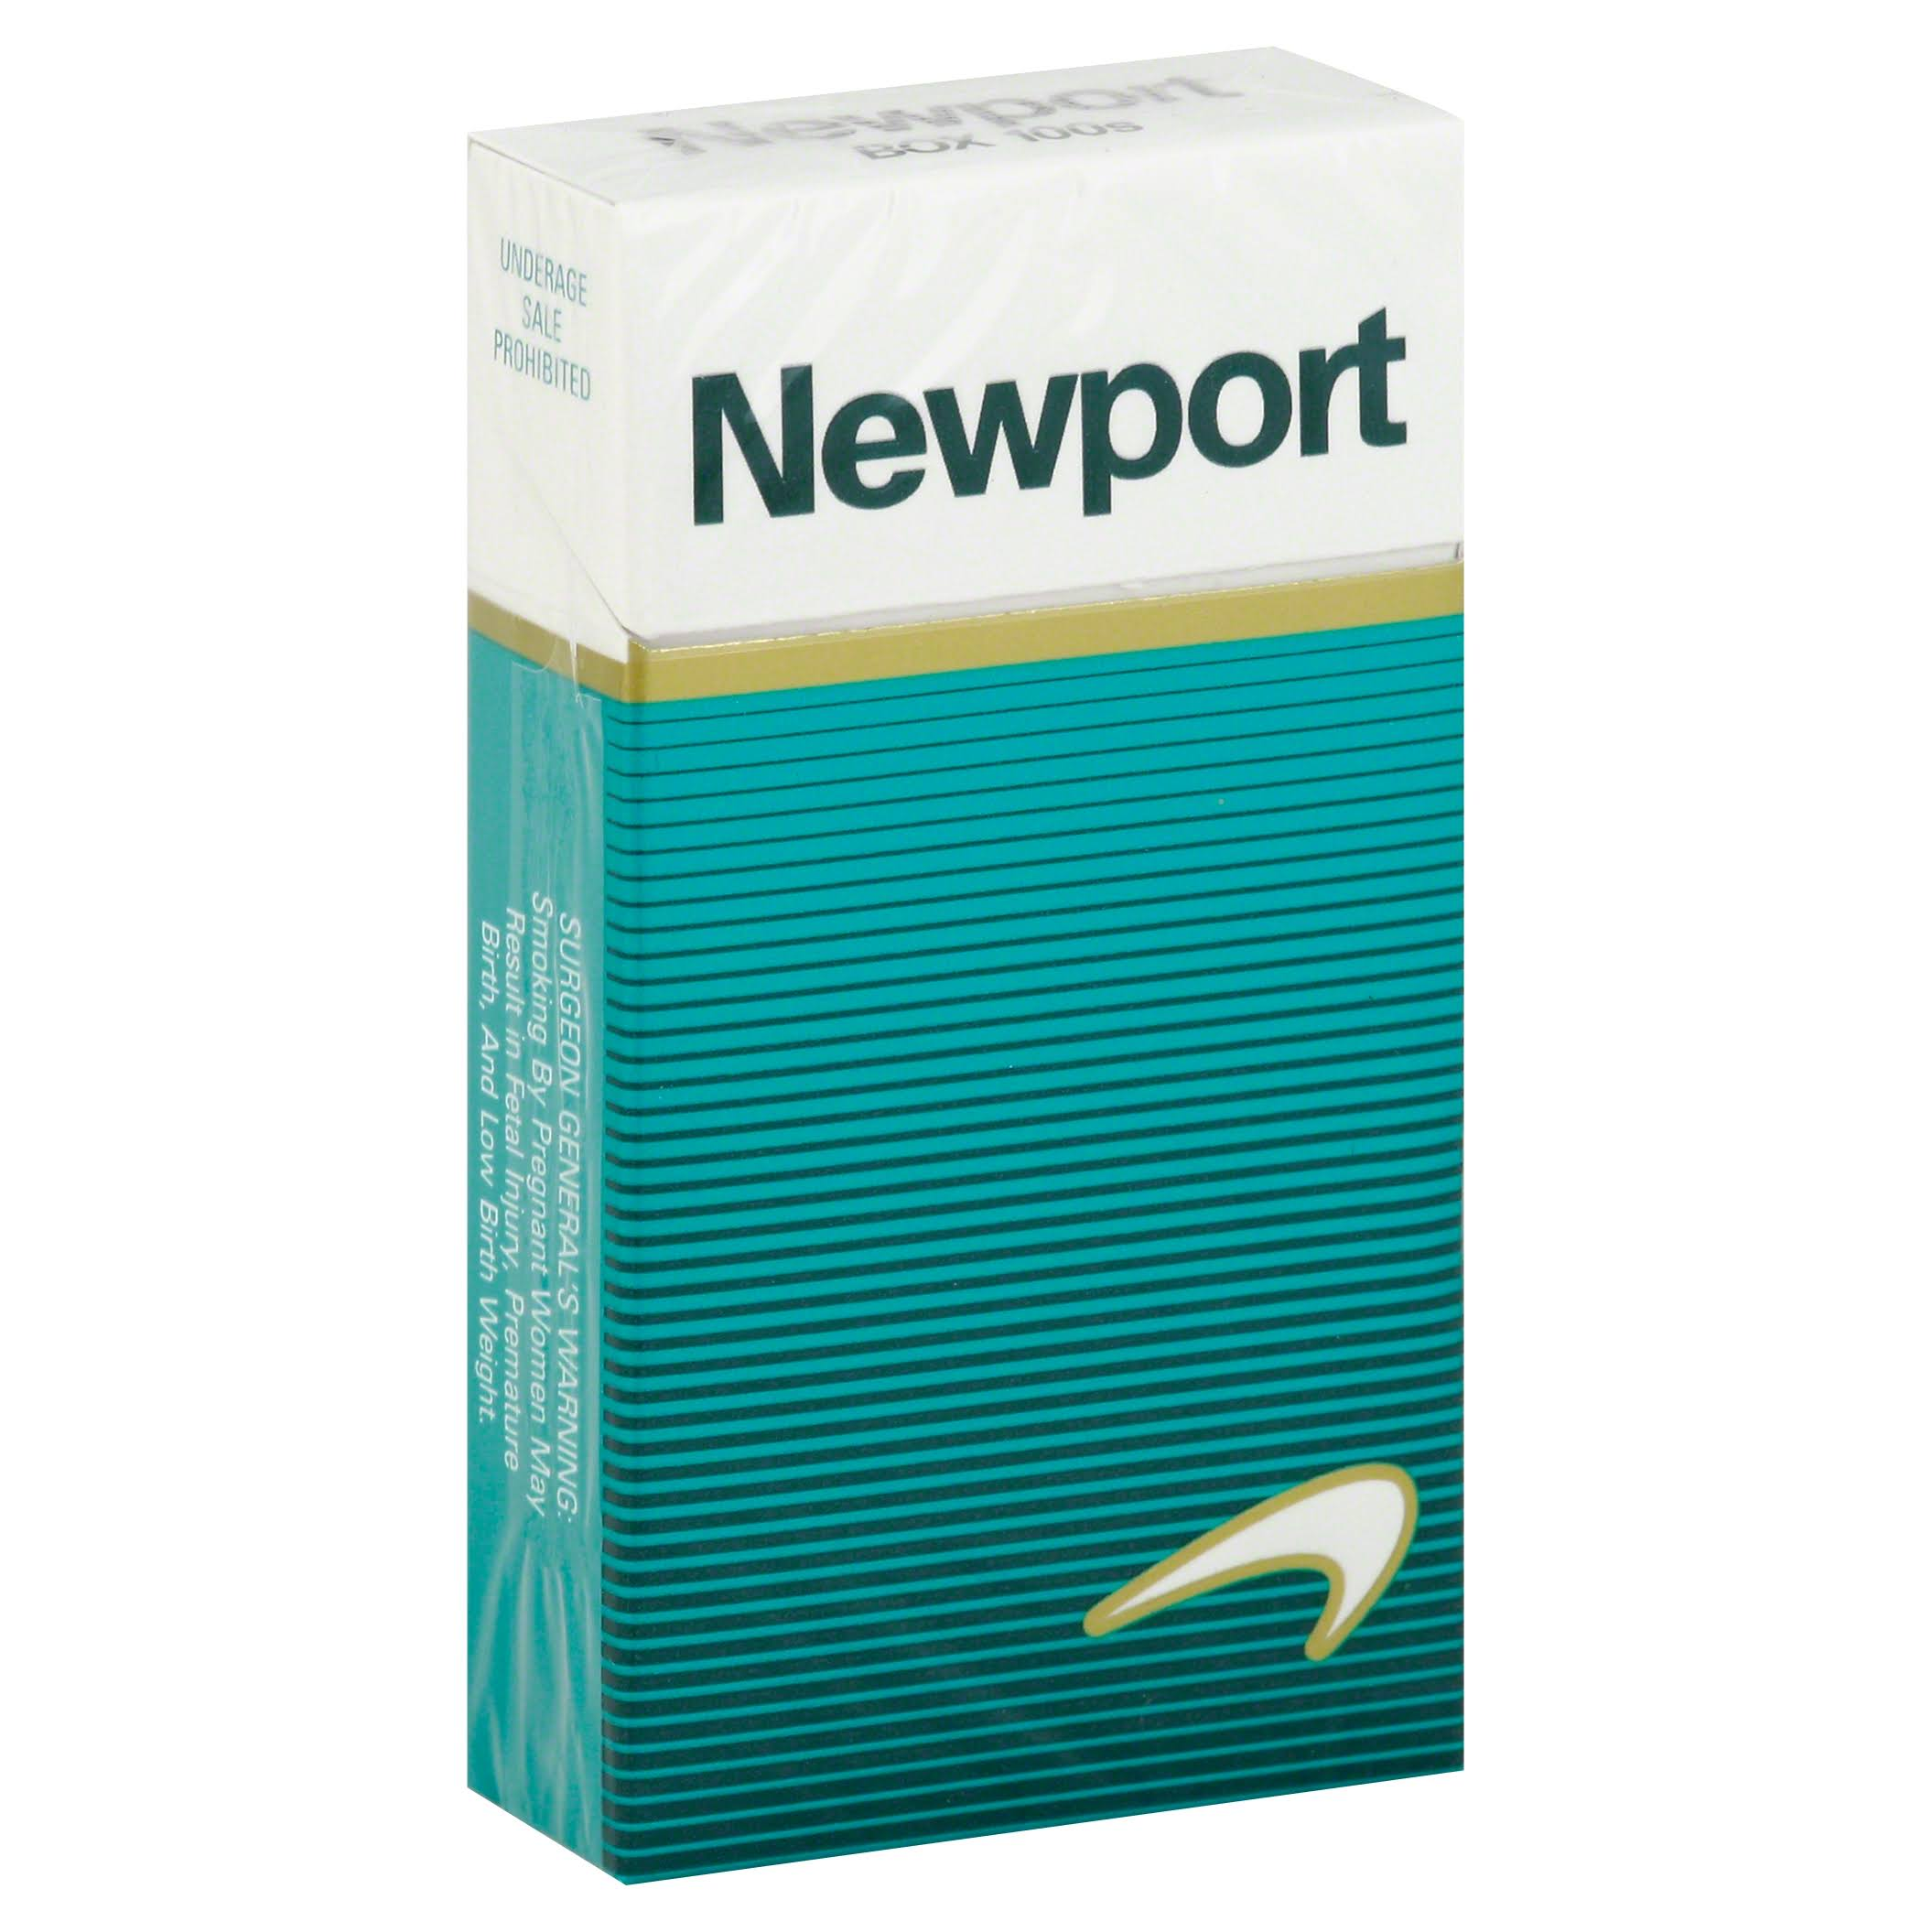 Newport Cigarettes, 100s, Box - 20 cigarettes